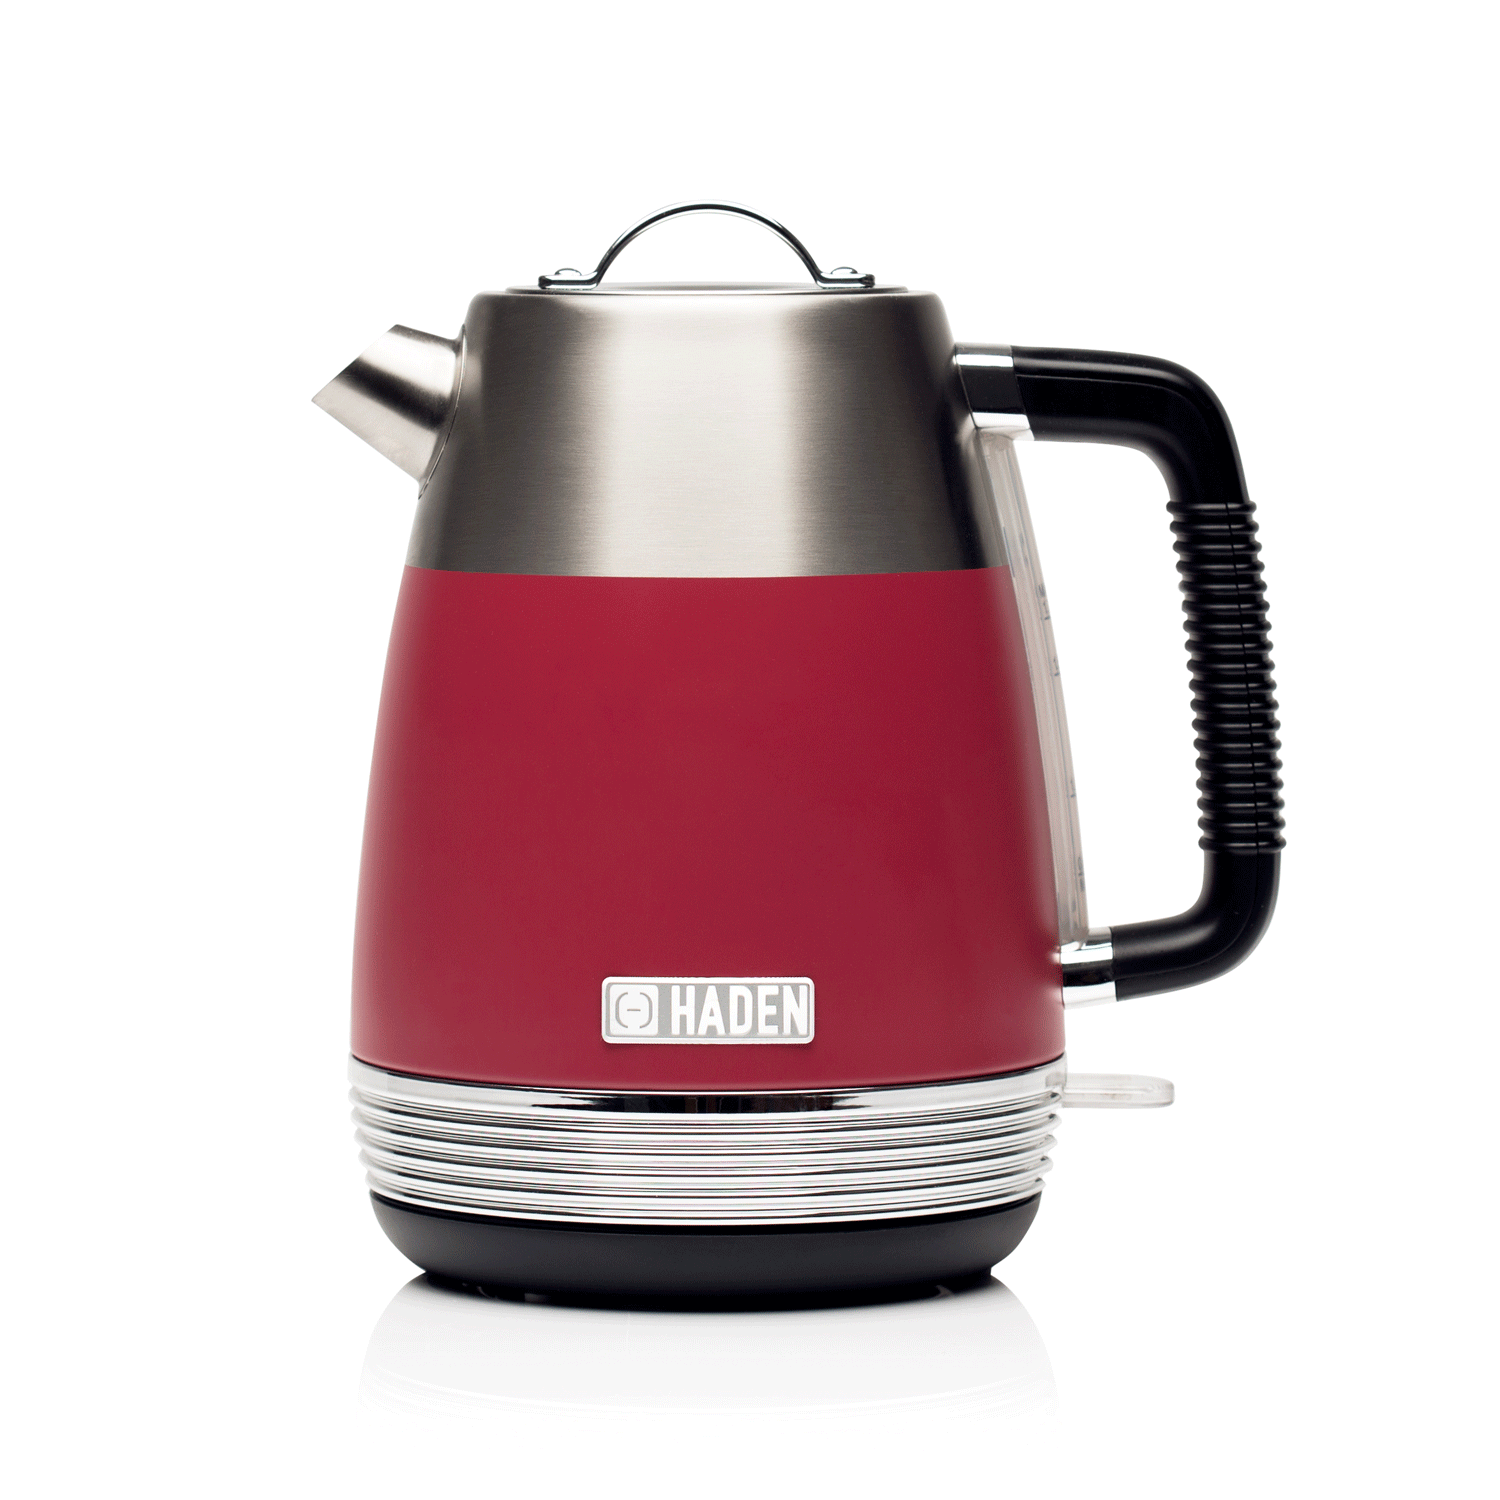 Image of Haden Chiltern 1.7 Litre Kettle, Berry